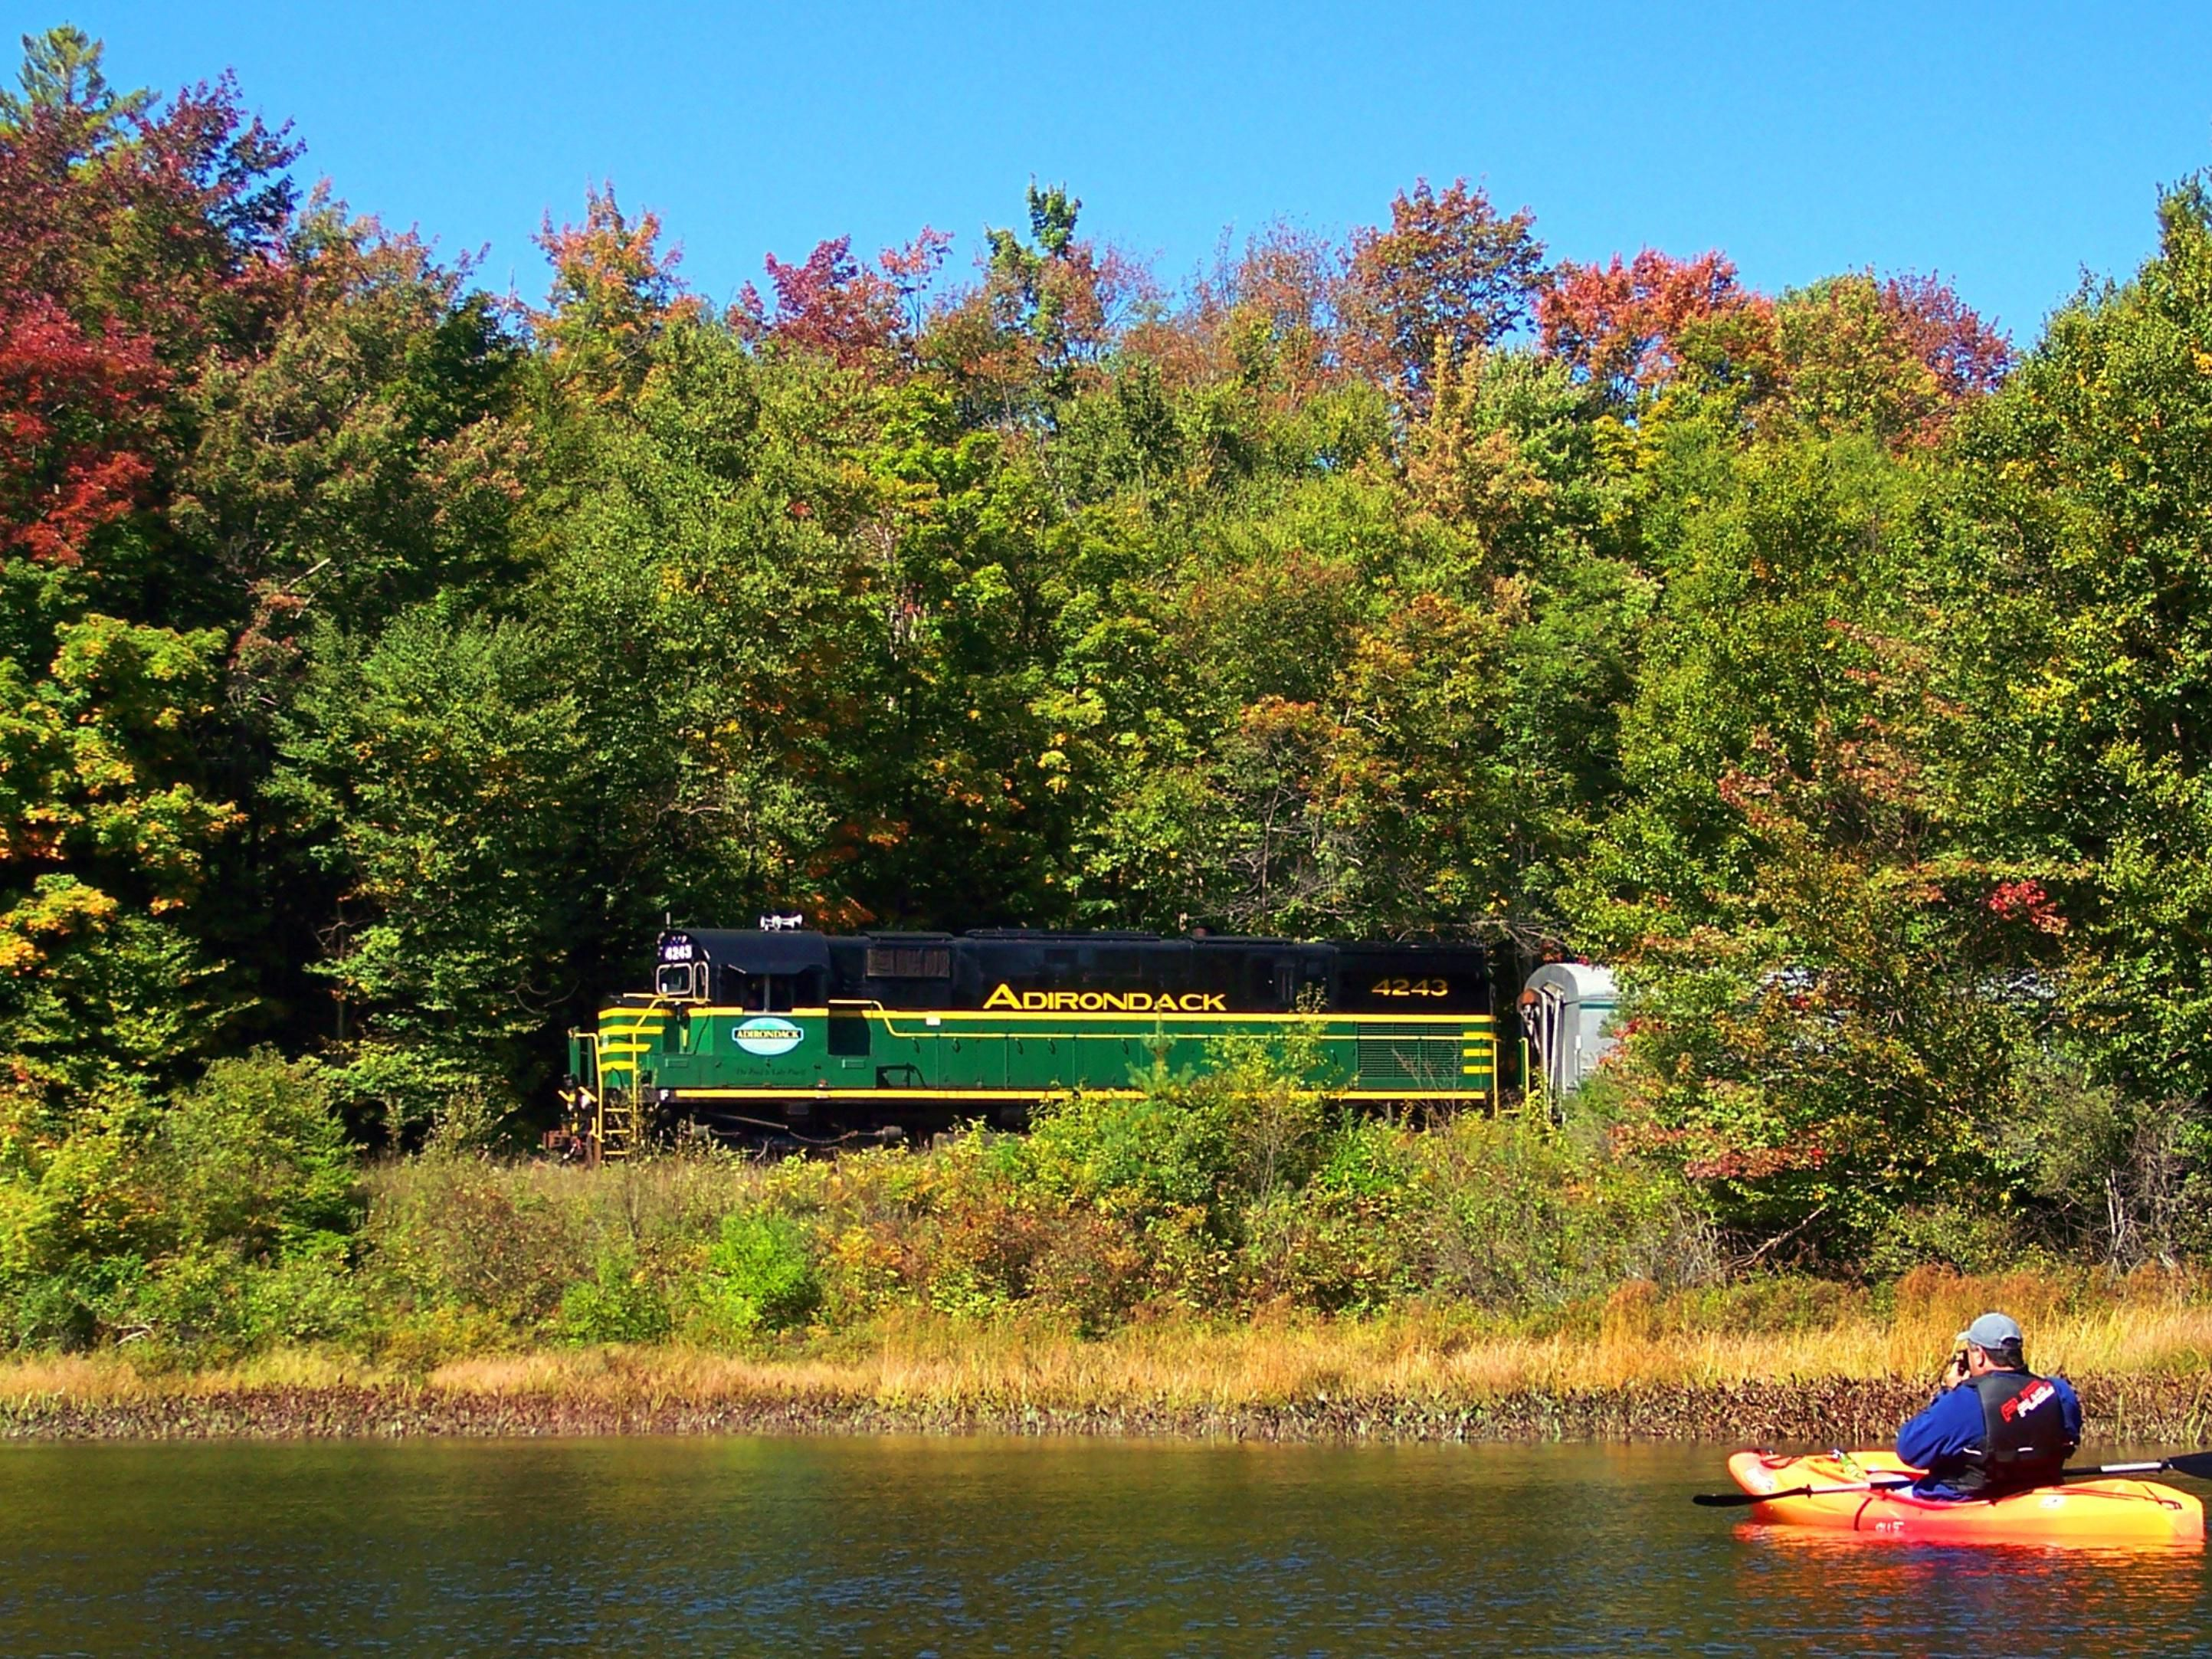 Just a short drive, or train ride, to the Adirondack Park